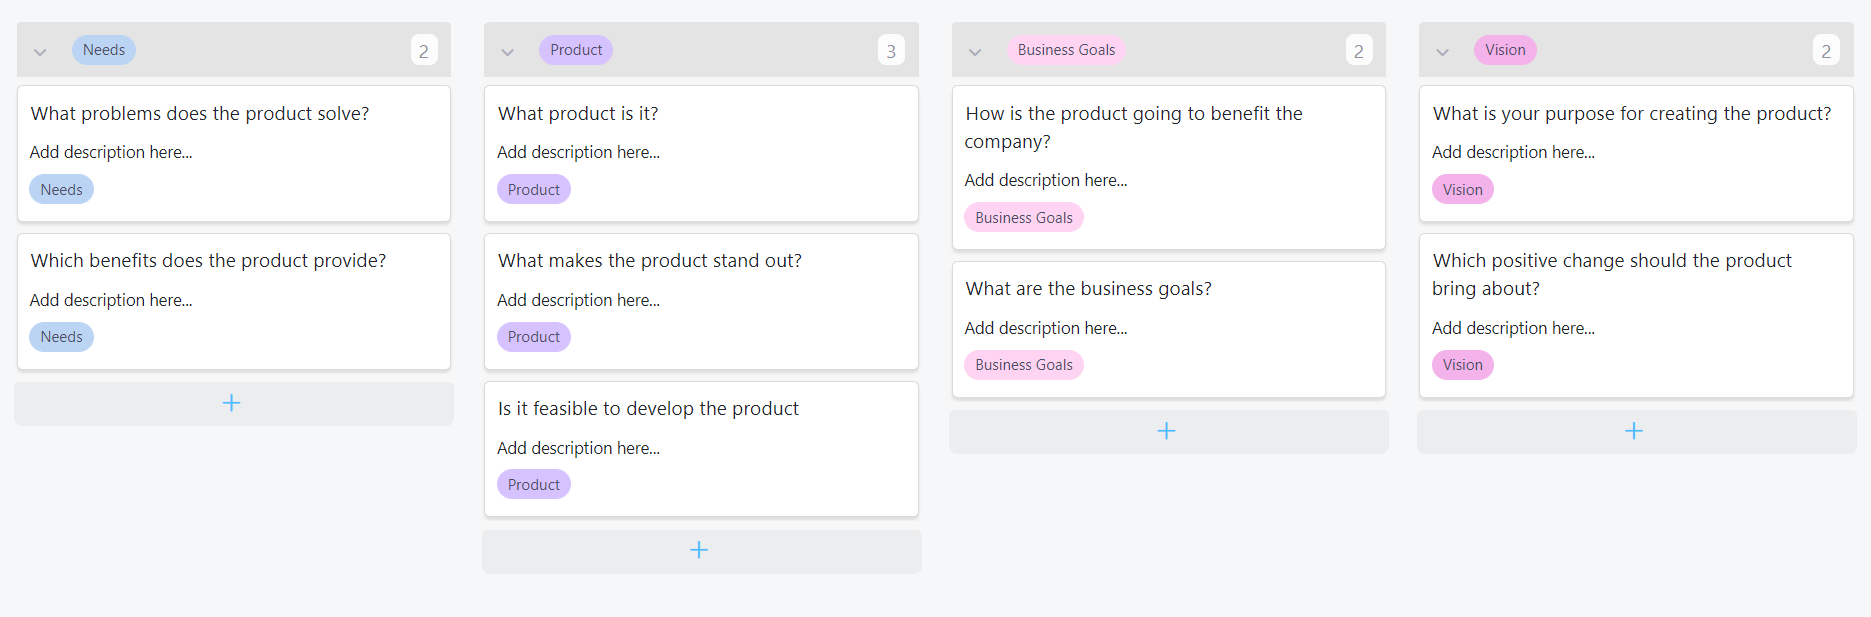 Example of product vision board in Infinity